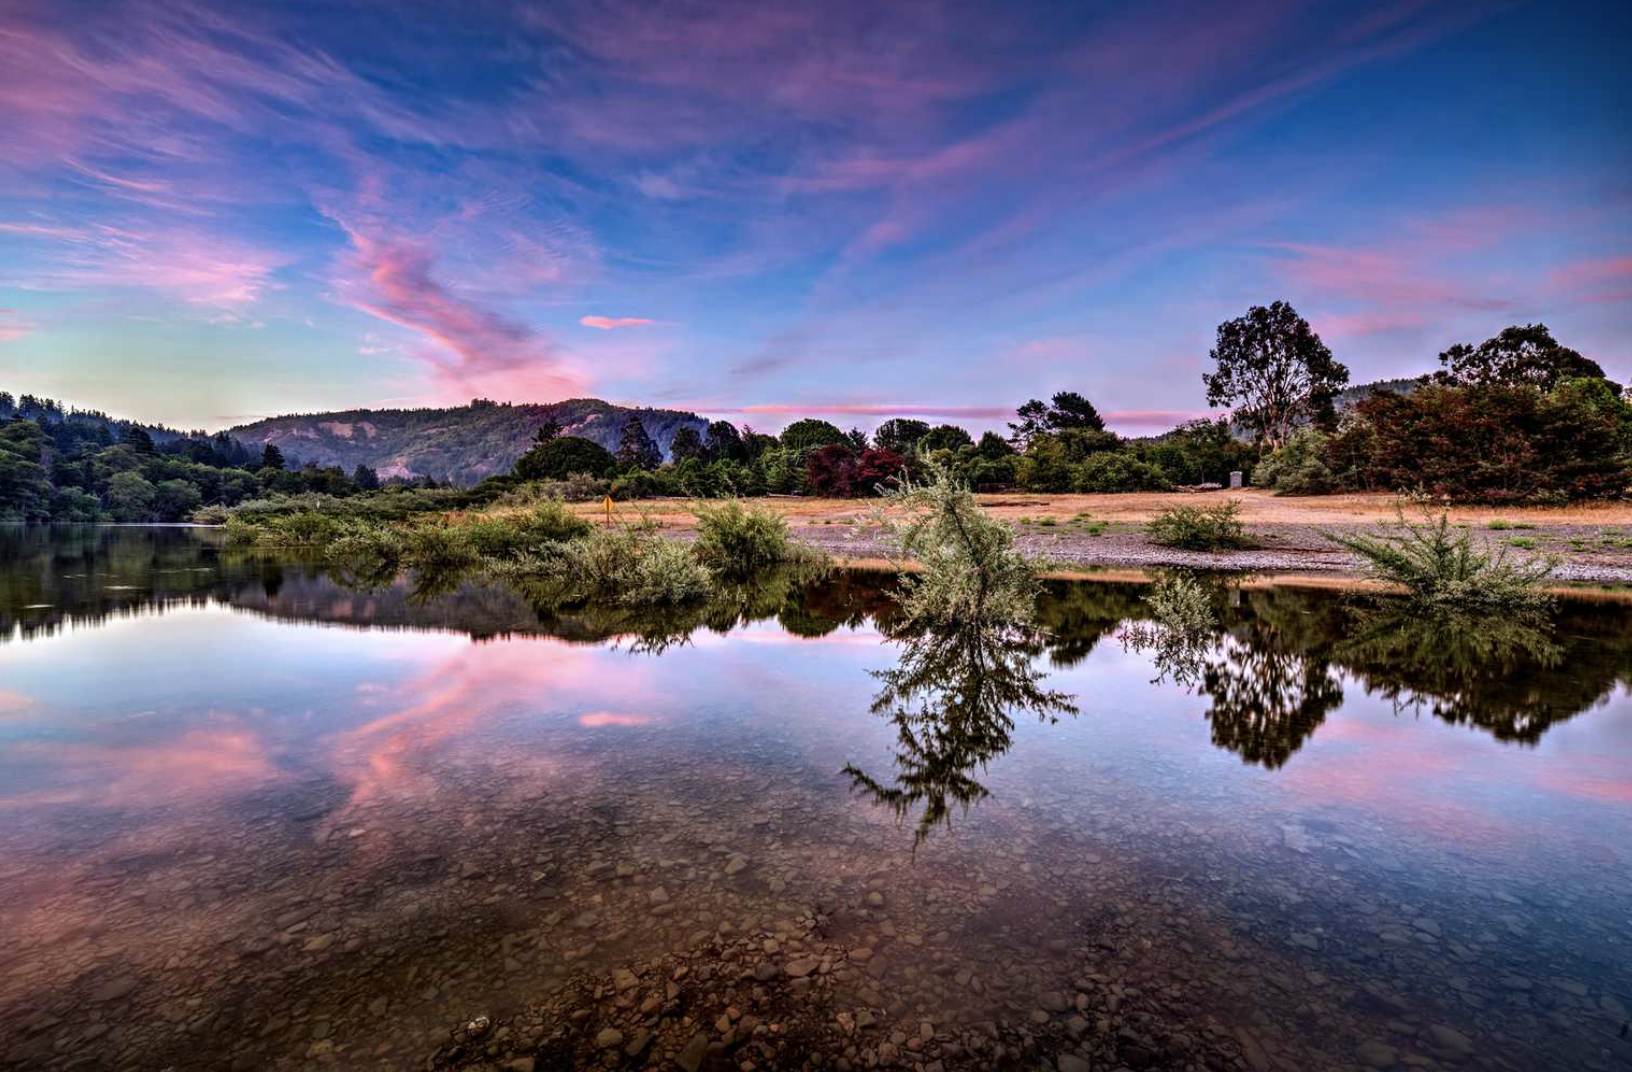 Water at Casini Ranch campground during sunset with purple sky